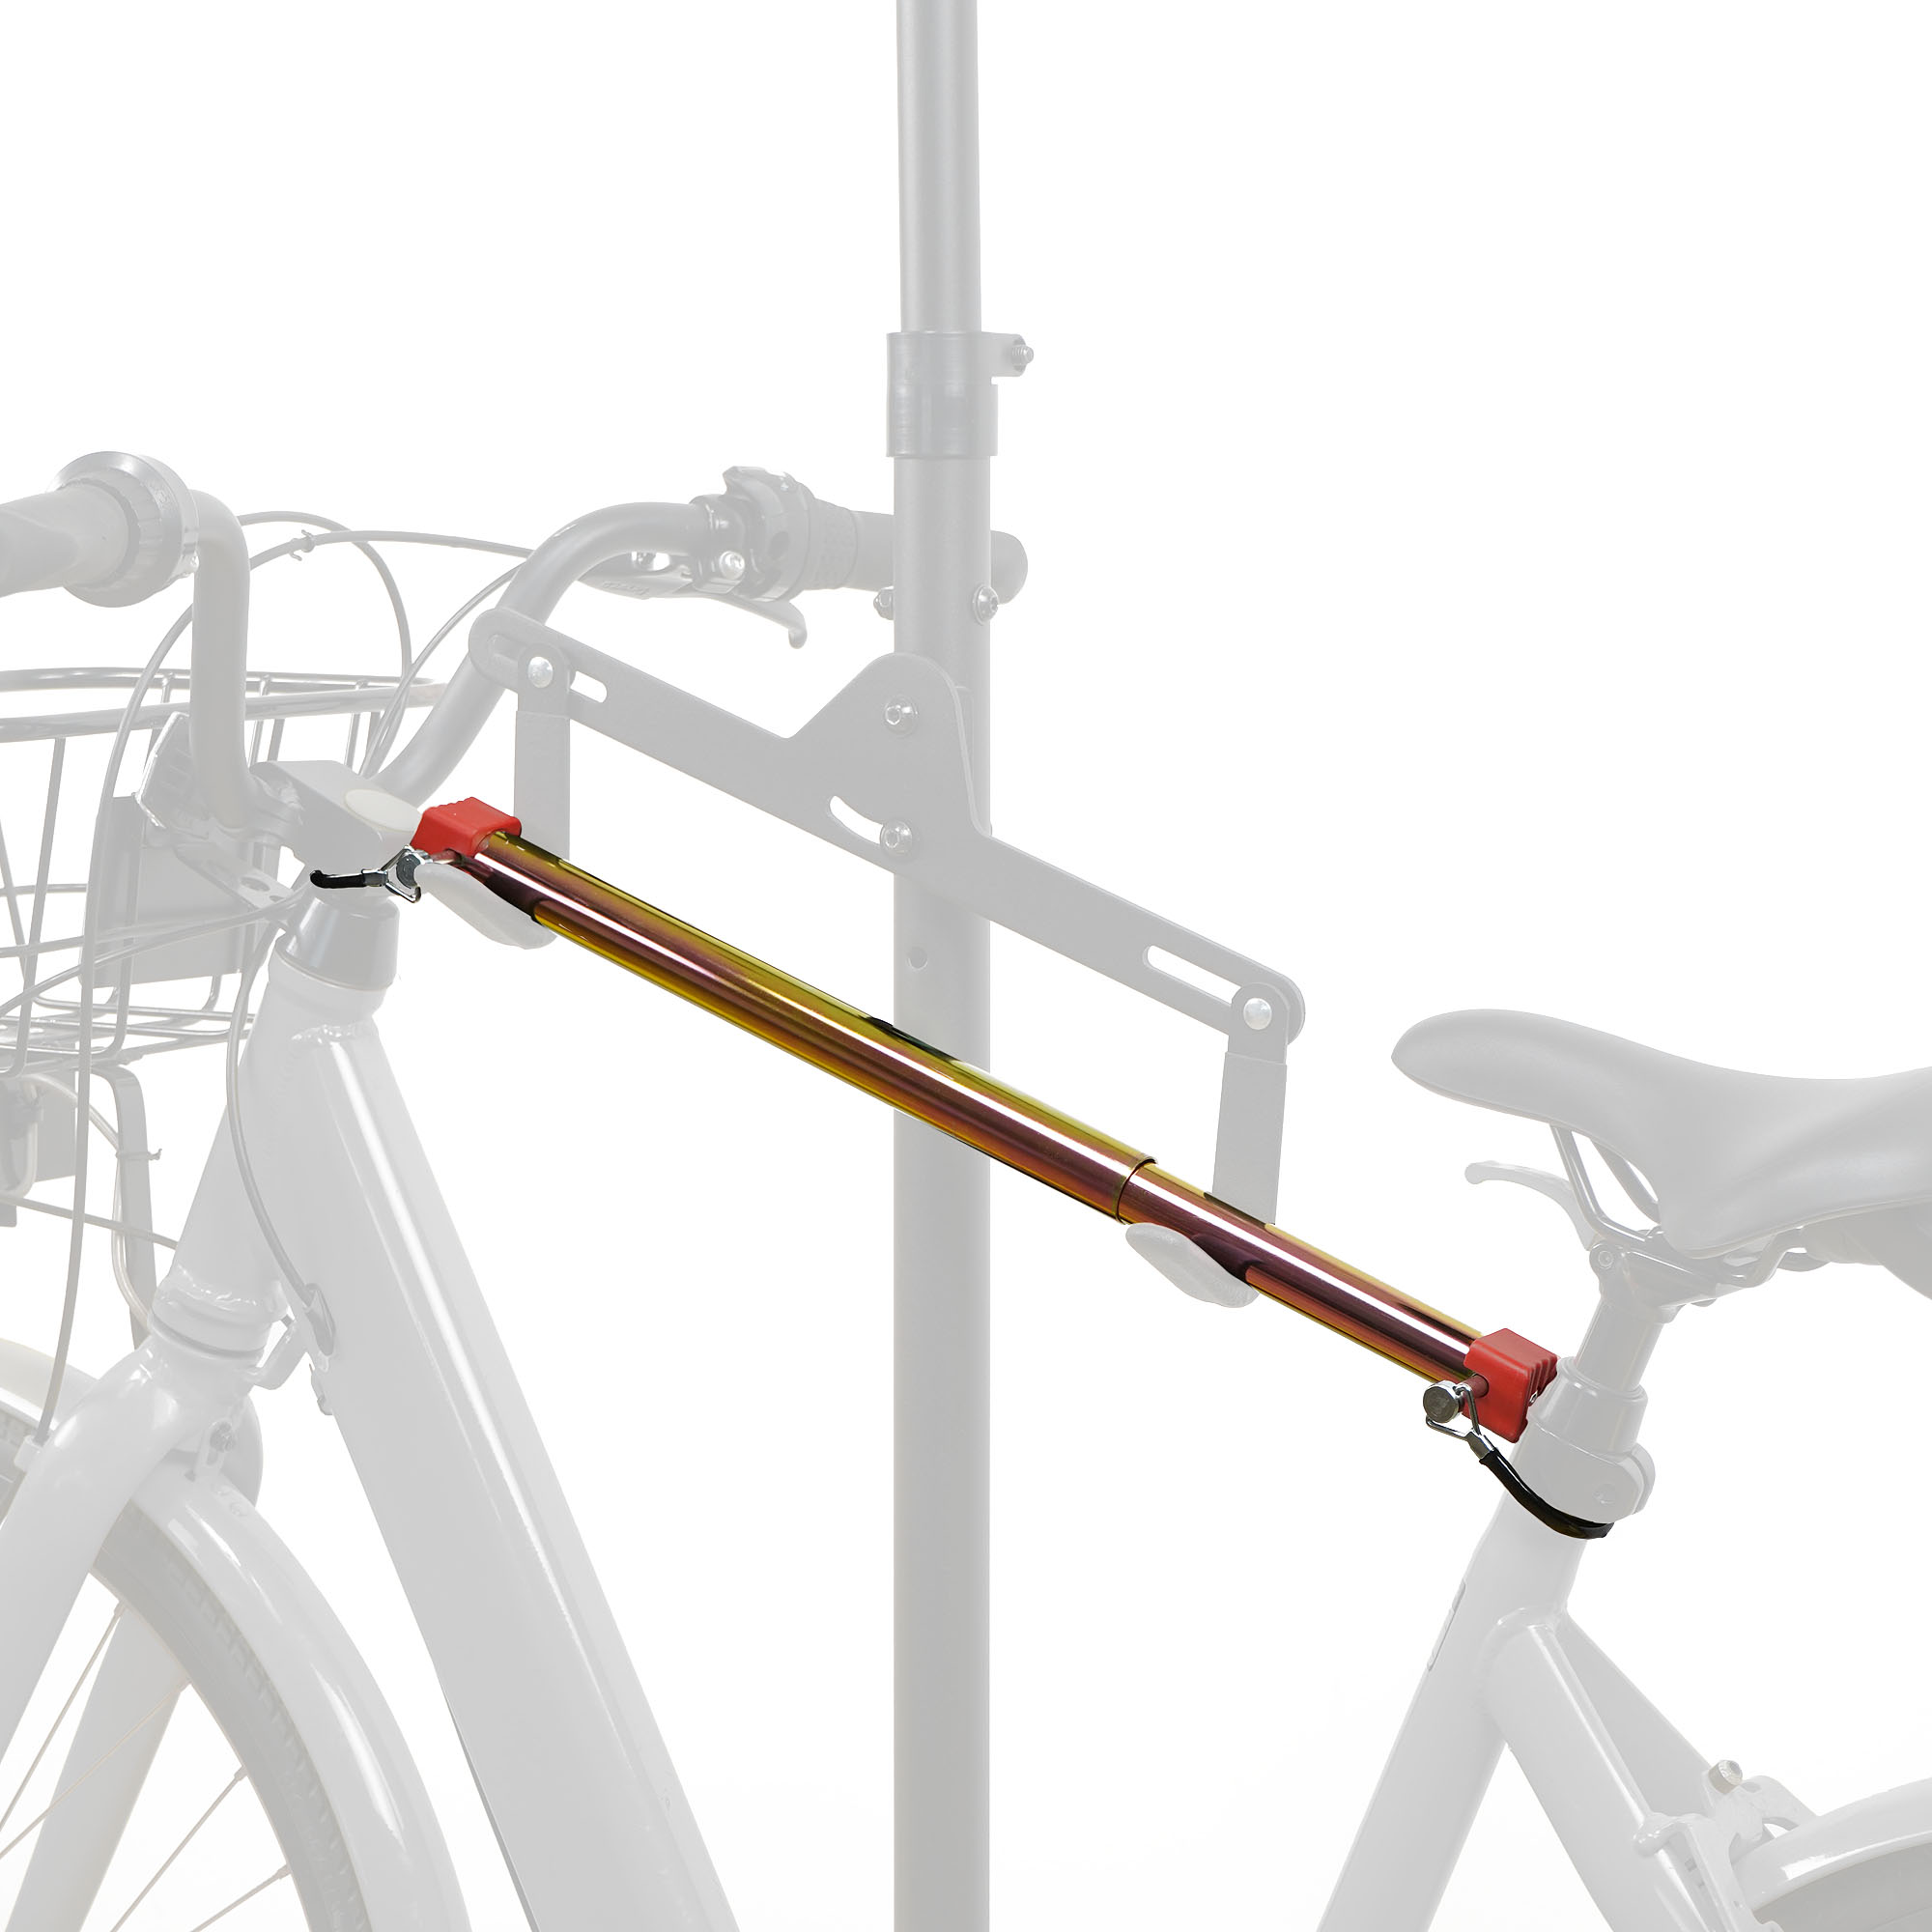 Details about  /Cyclingdeal Economical Quality Bike Rack Bicycle Frame Adapter Cross Bar